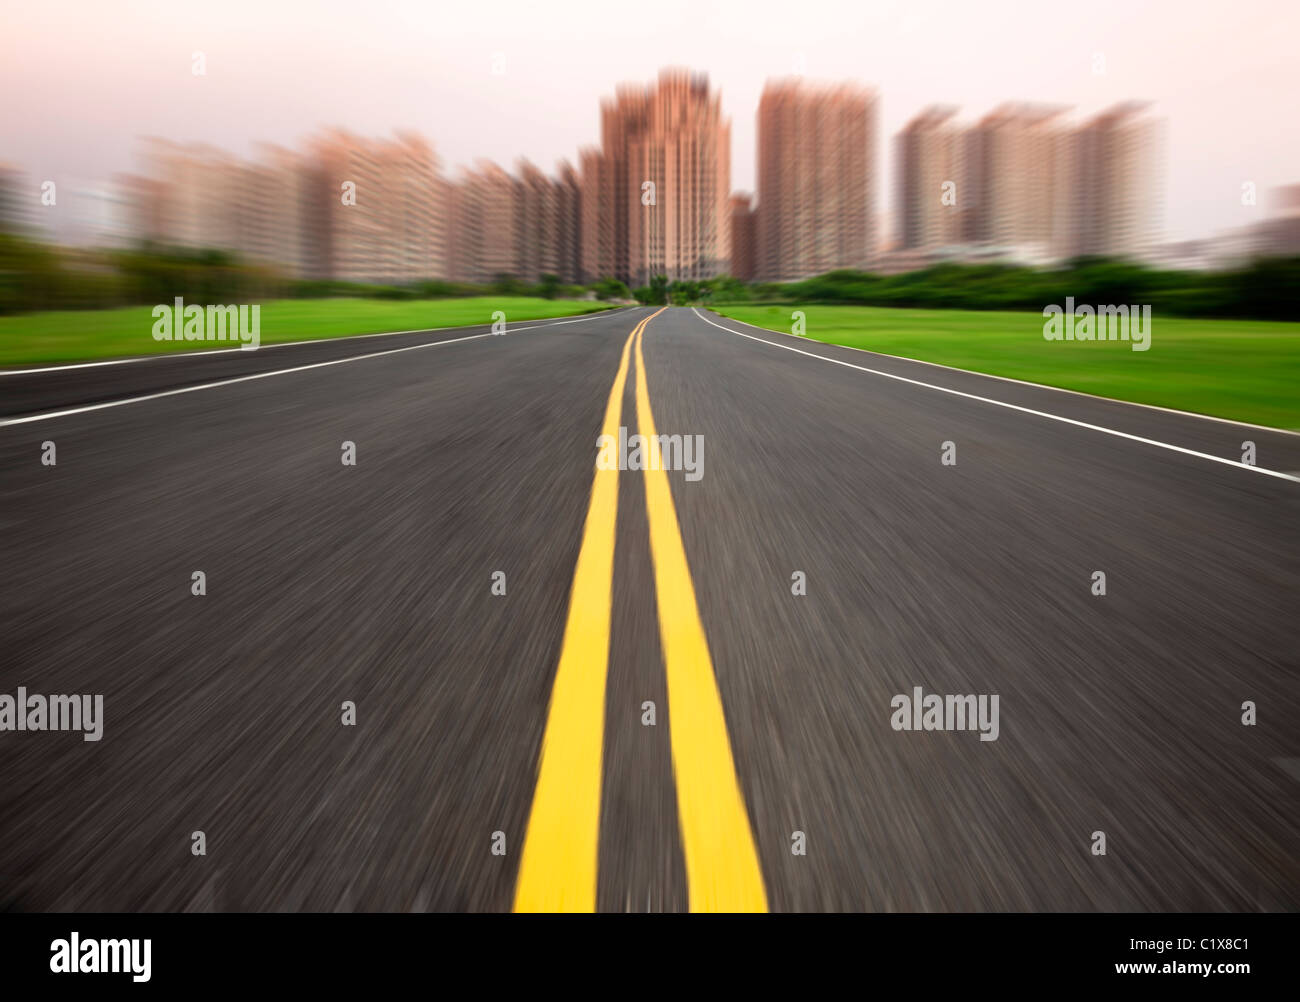 the road to city in motion blur - Stock Image